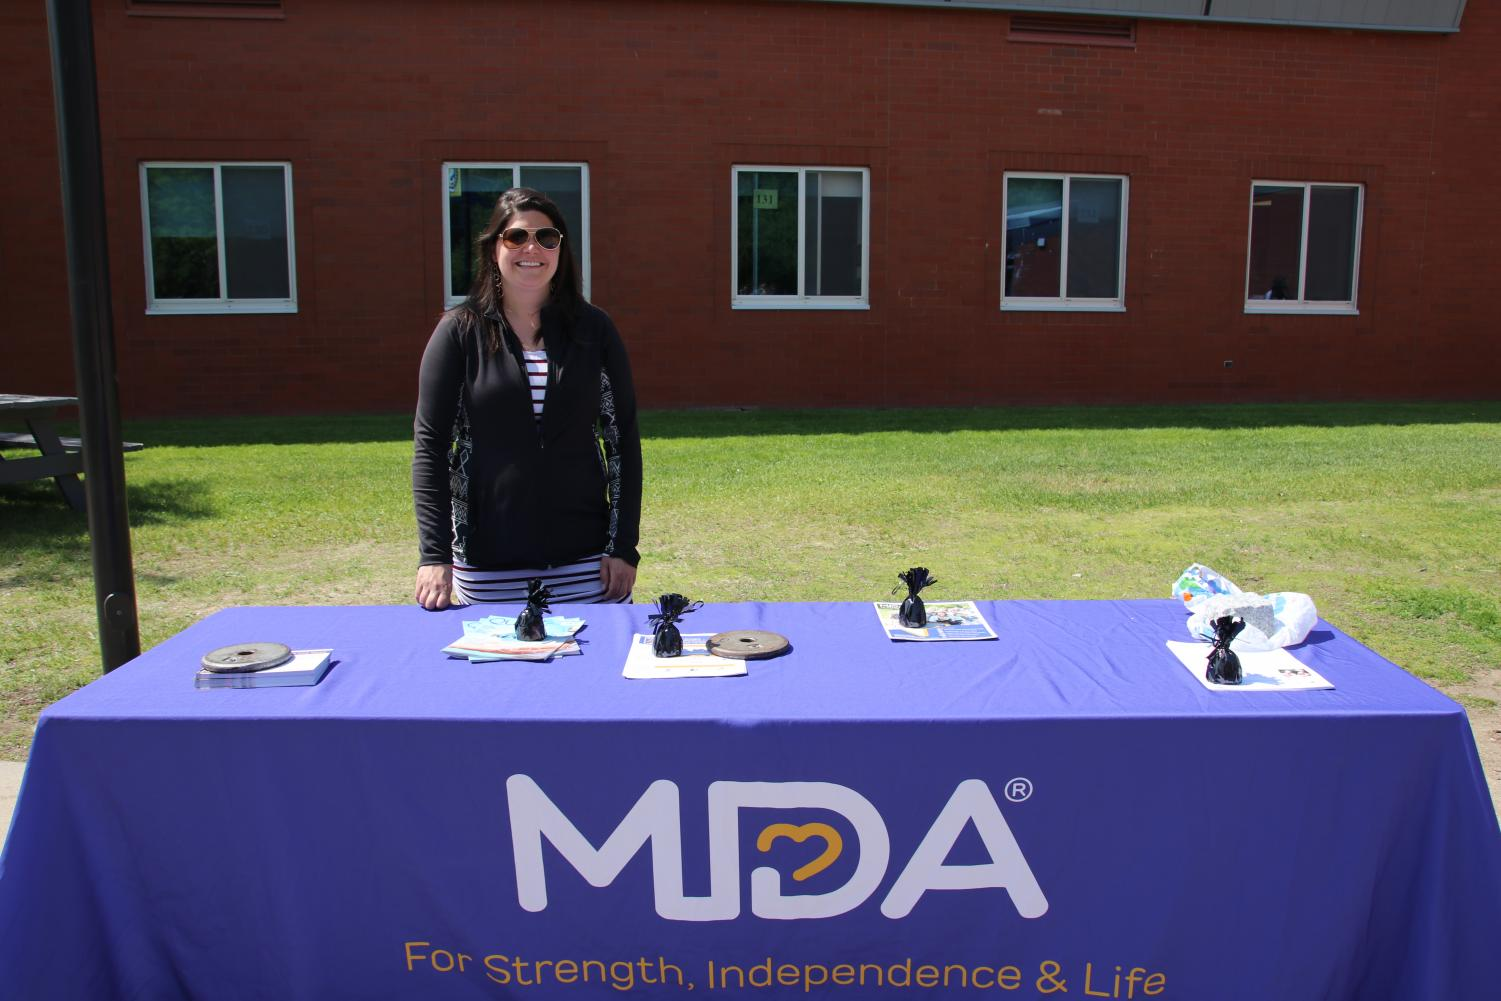 The+Muscular+Dystrophy+Association+joined+other+organizations+to+raise+awareness+to+their+cause.